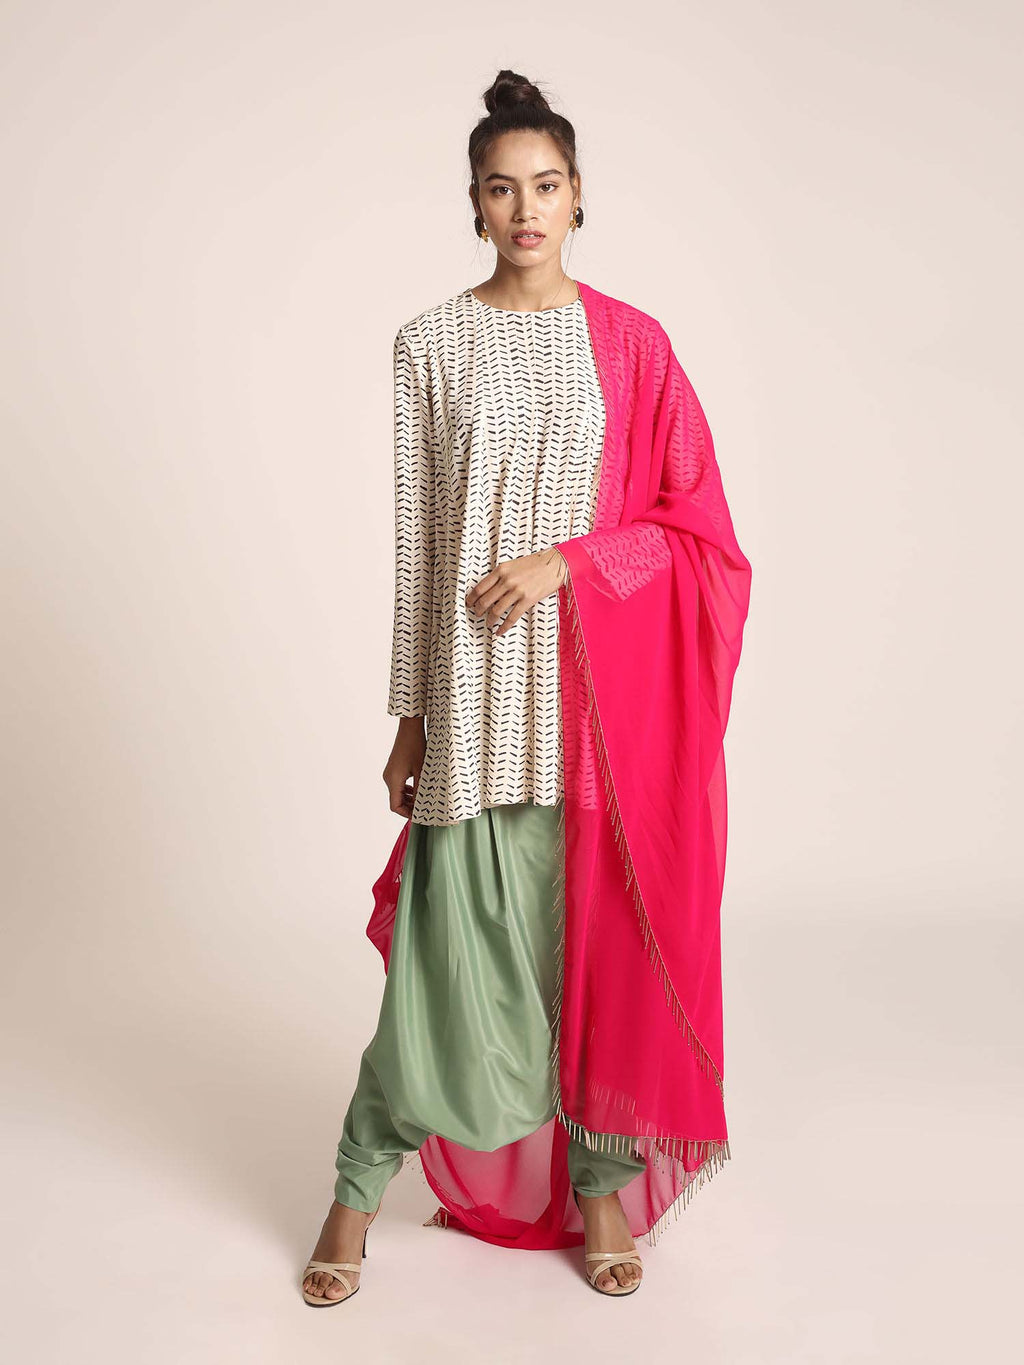 Cream Colour Printed Art Crepe Short Kalidaar with Green Colour Art Crepe Low Crotch Pant and Hot Pink Colour Art Georgette Dupatta - Riviera Closet